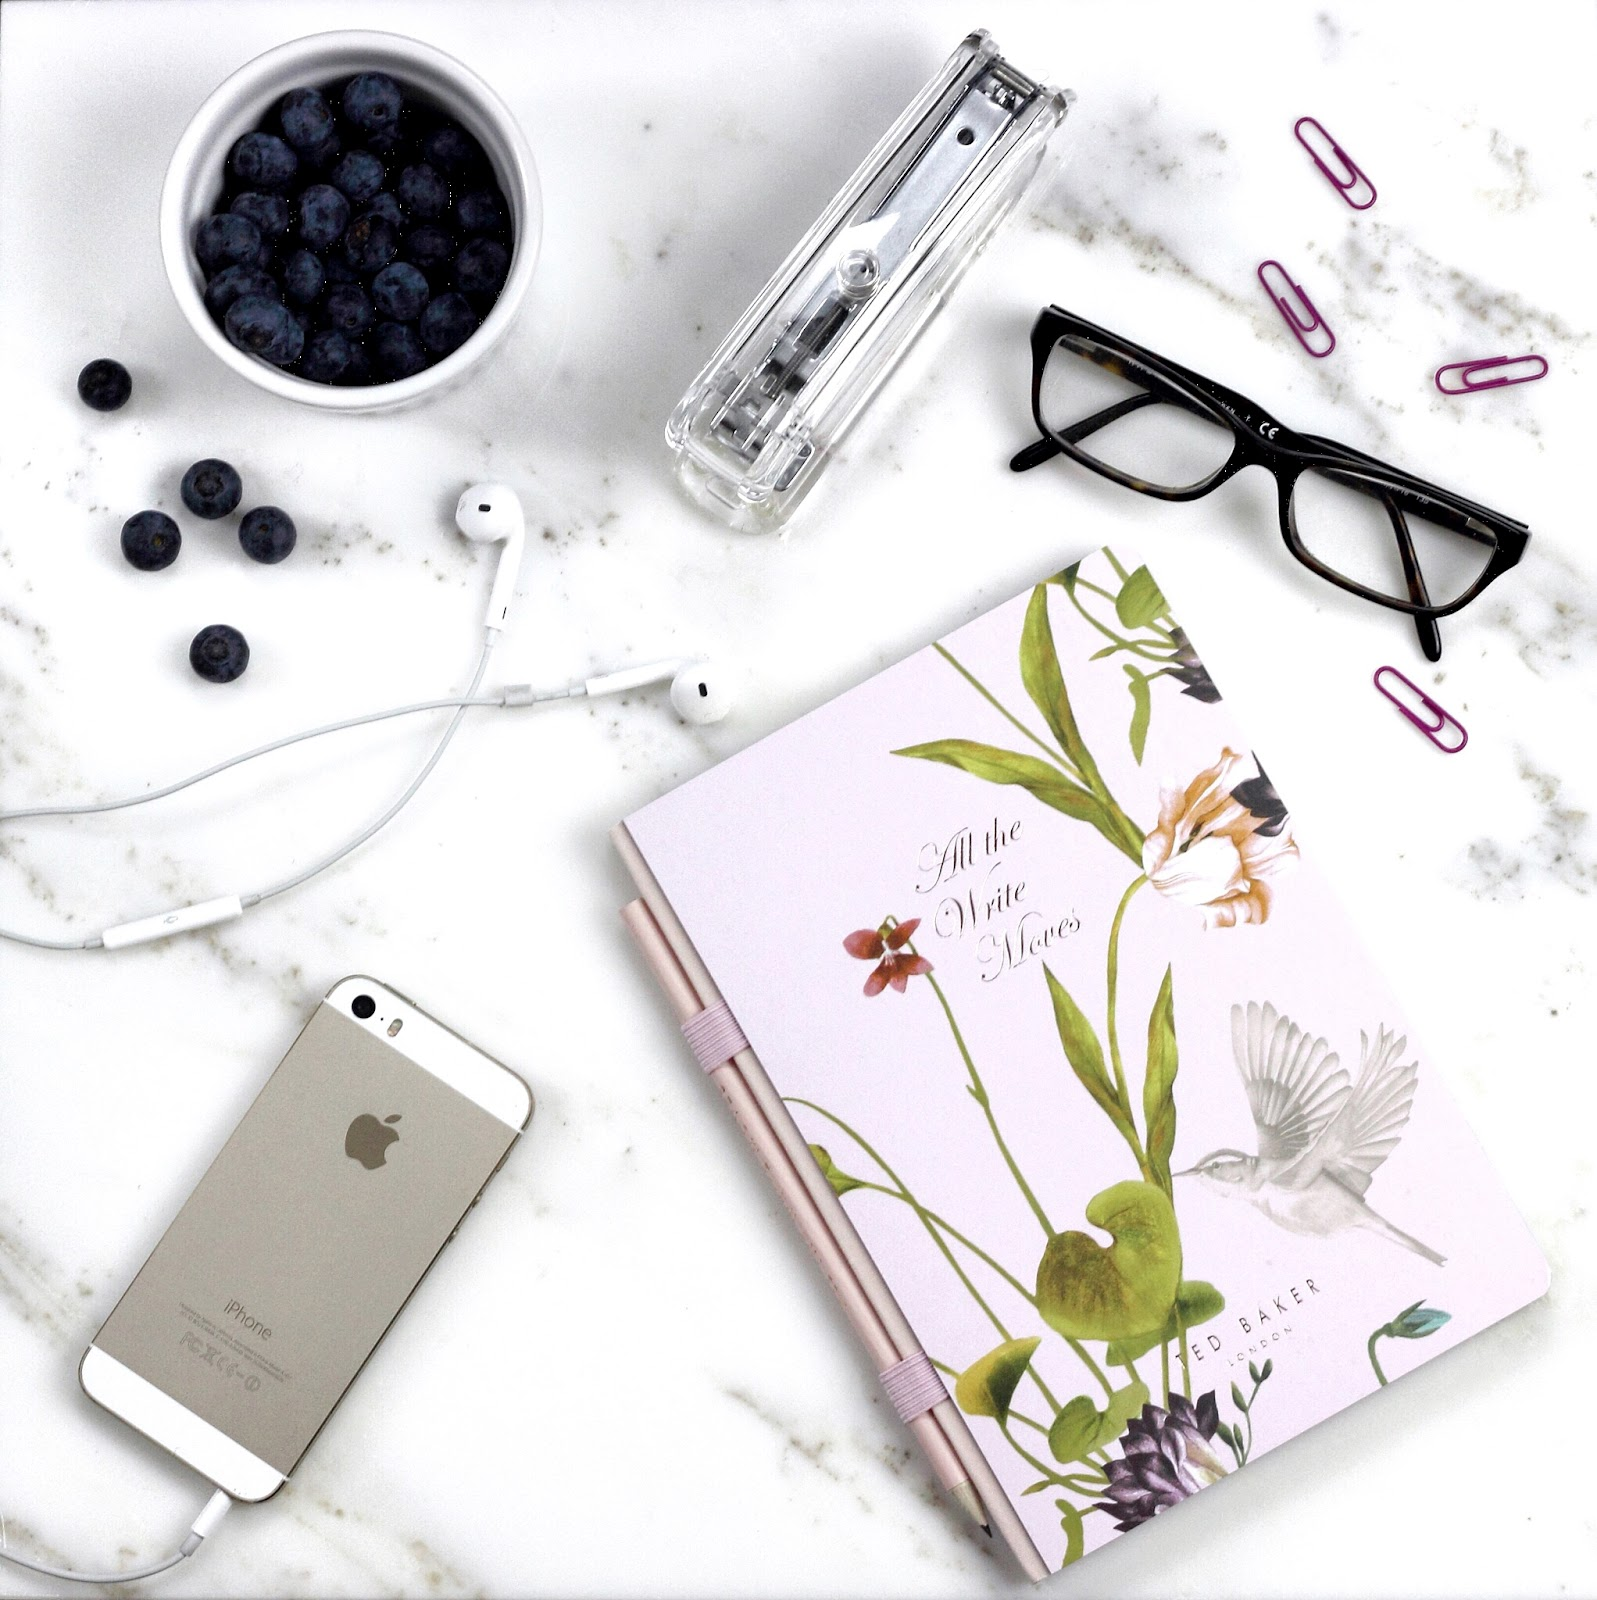 british blogger, lifestyle blogger, fashion blogger, makeup blogger, beauty blogger, ted baker, haul, notebook, oriental bloom, photography, flatlay, anasofiachic, internet gift store